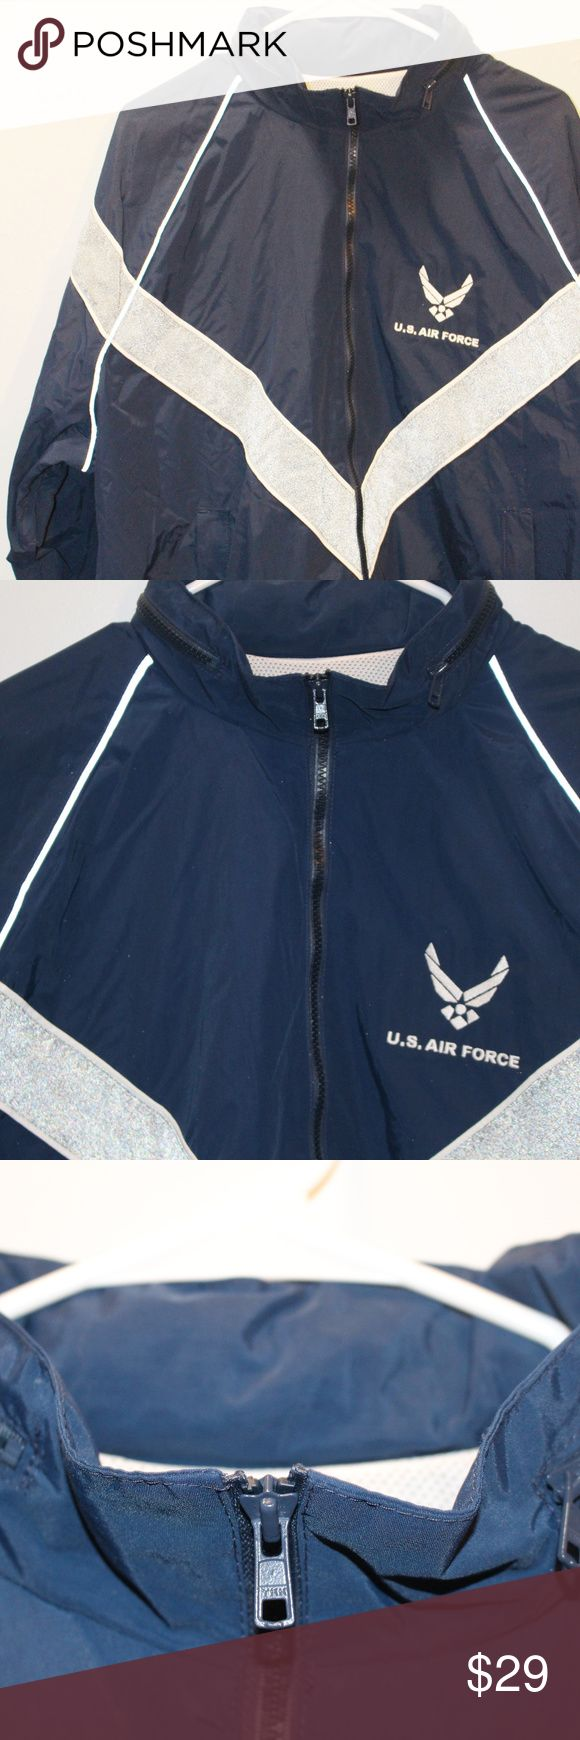 Air Force Jacket Sz Lg Skilcraft Men's Skilcraft Air Force Jacket.  Official.  Size Large.  Men's.  Could be unisex however.  Navy with a gray stripe running around jacket.  This is a jacket/windbreaker.  Please see photos.  Excellent condition. Air Force Jackets & Coats Windbreakers